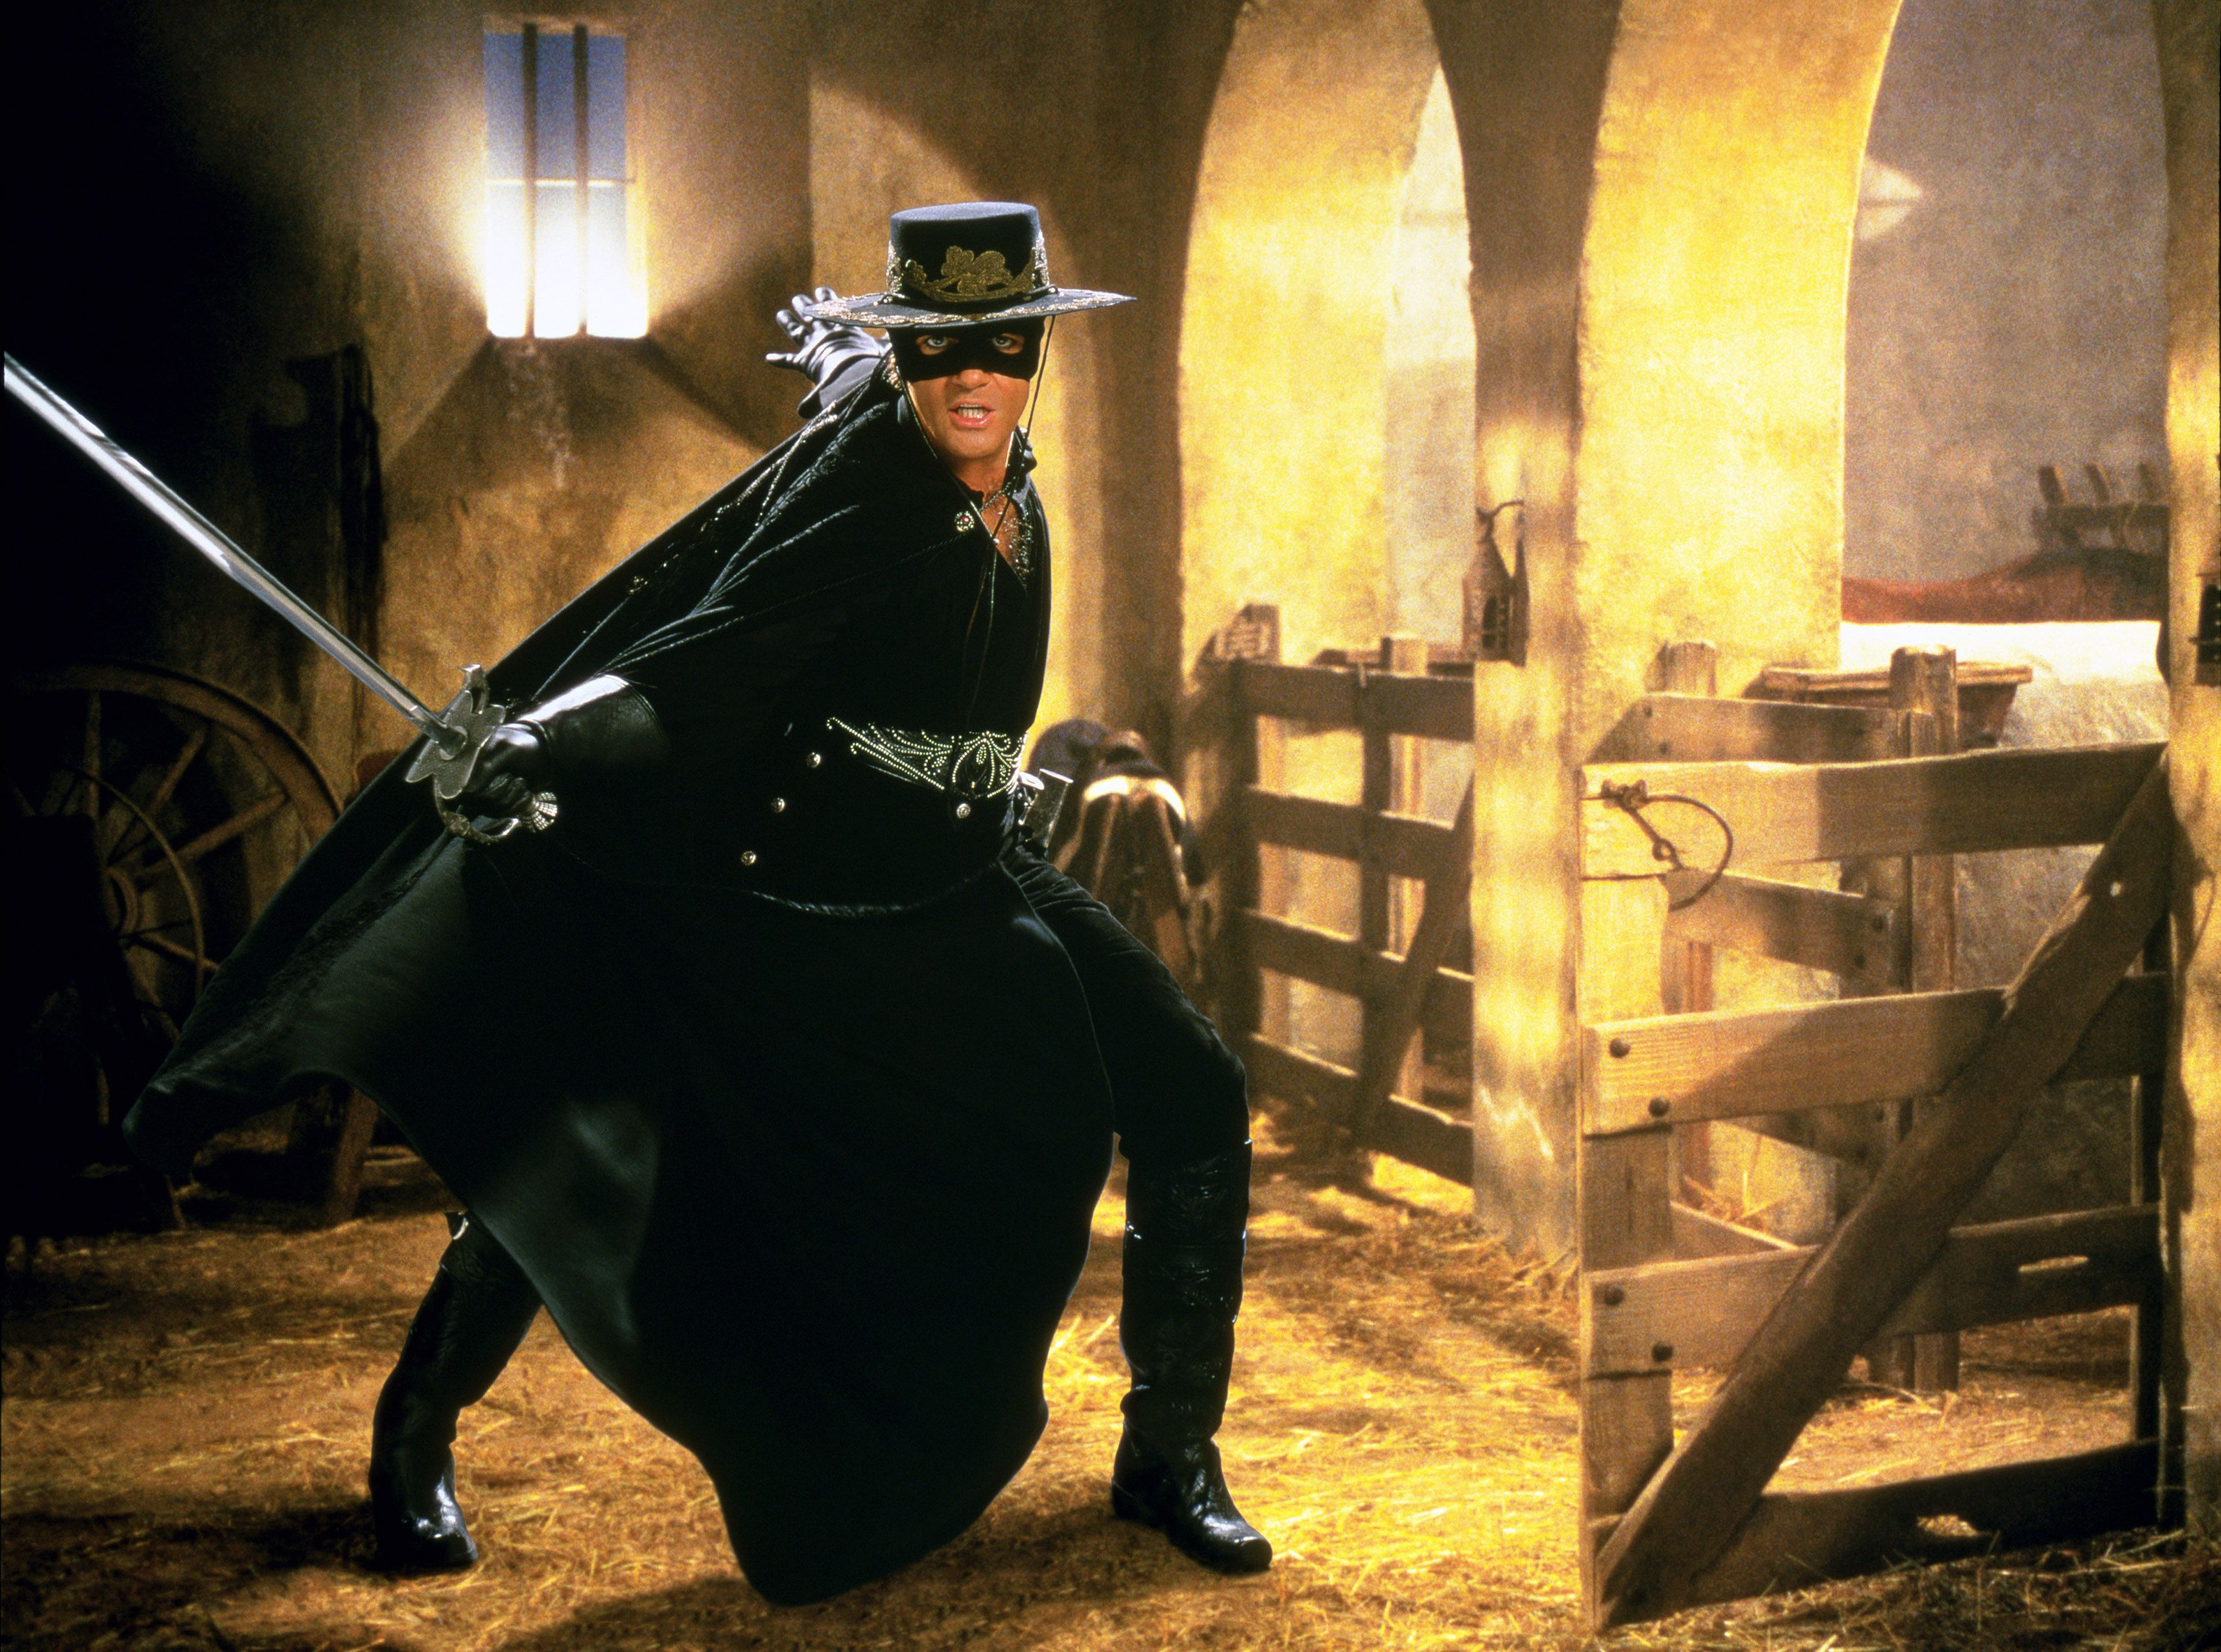 CBS Is Developing a 'Zorro' TV Series With a Female Lead